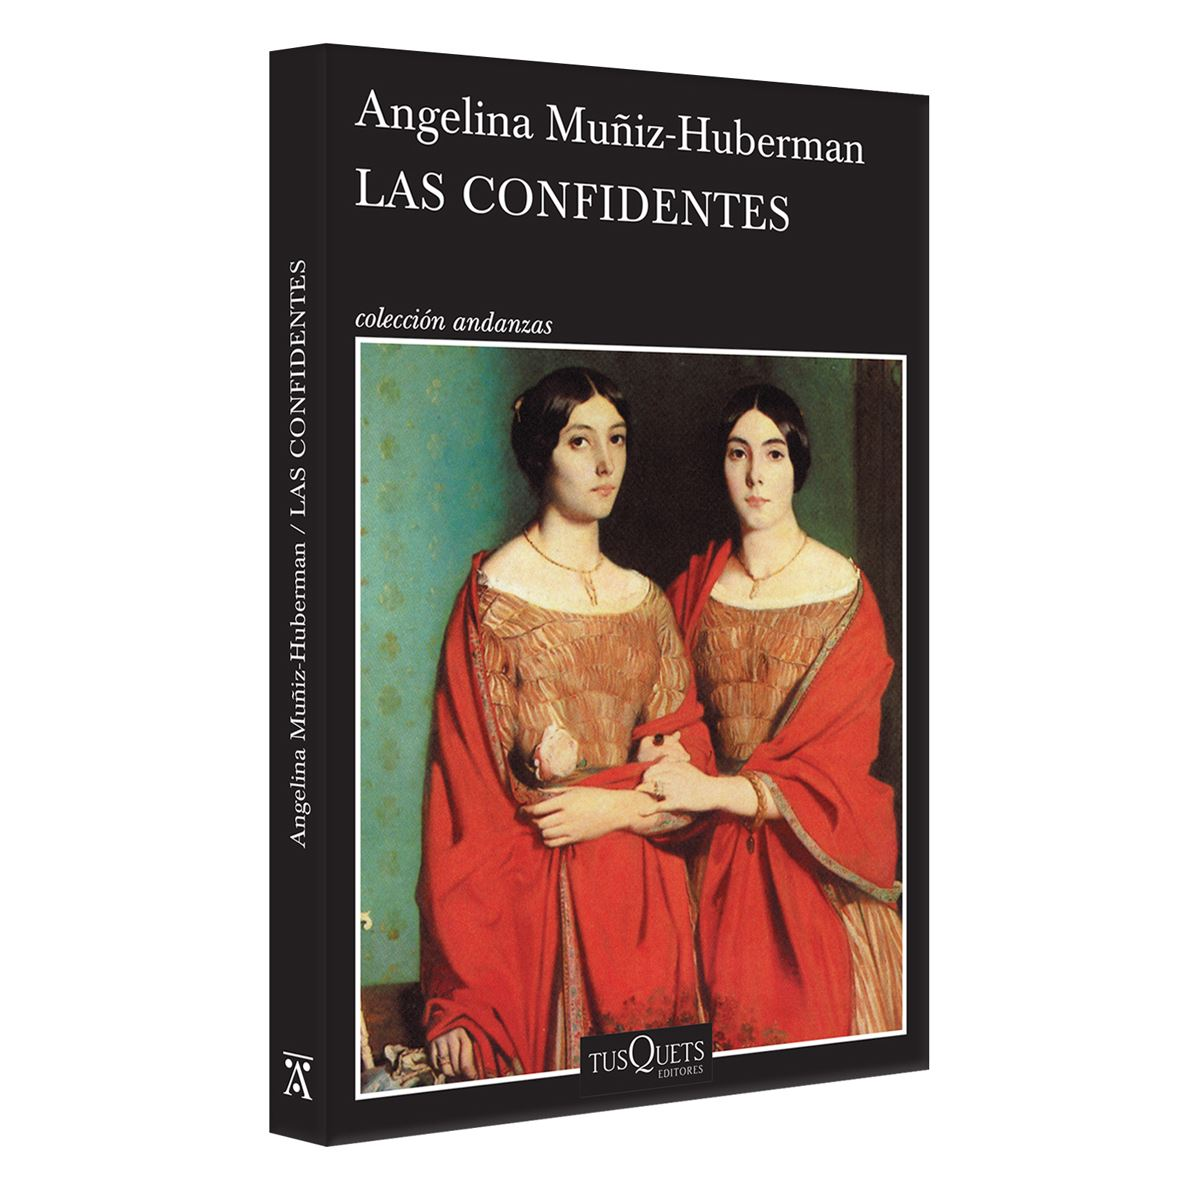 Las Confidentes